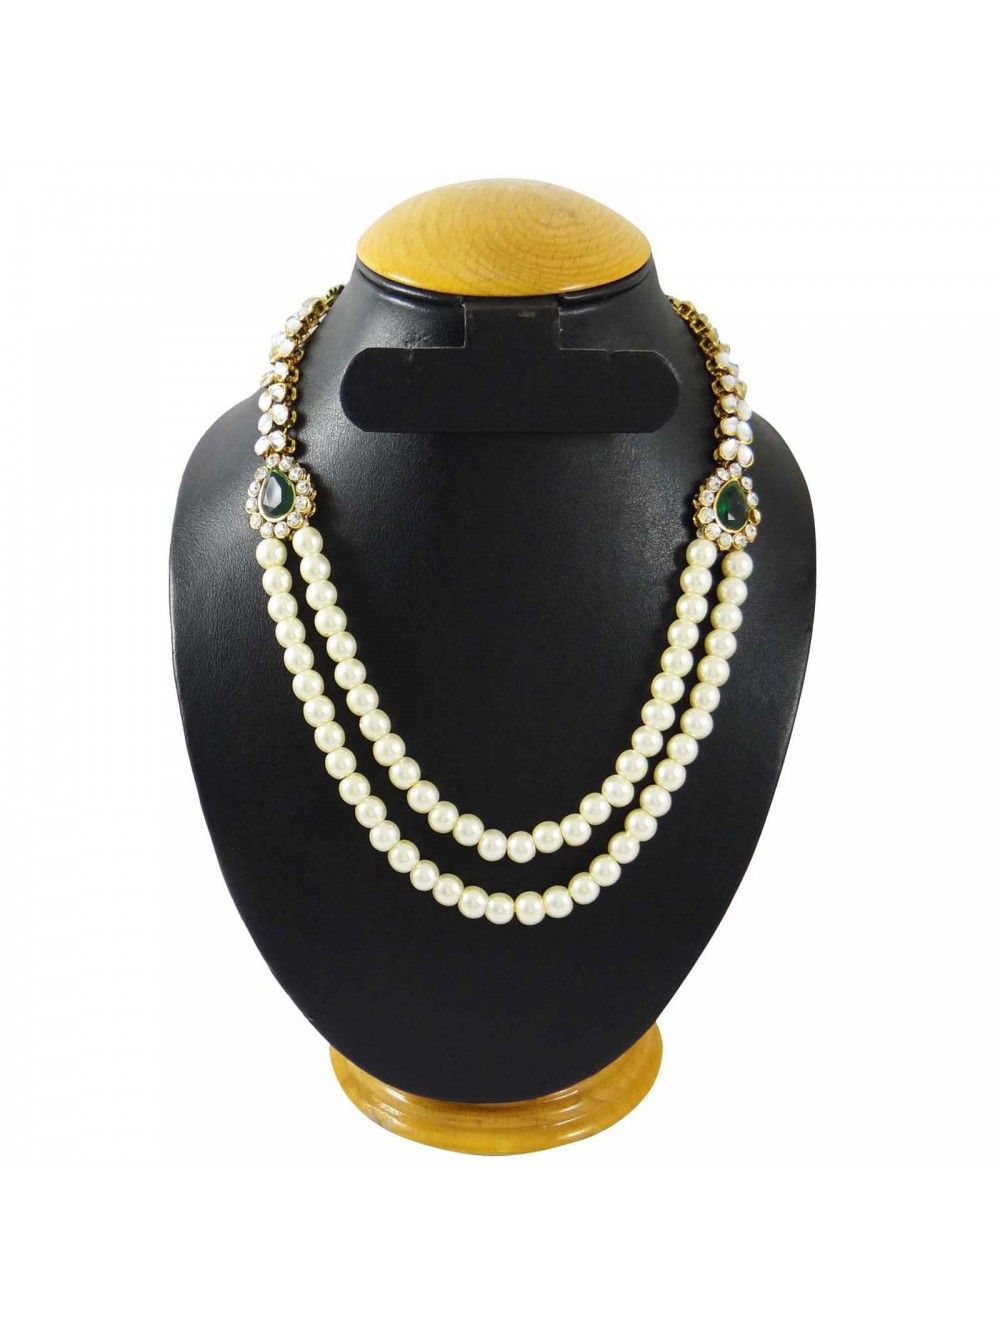 6dac176e02 Traditional Indian Ethnic Pearl Necklace Women Wedding Bollywood Jewelry  BNS8033A